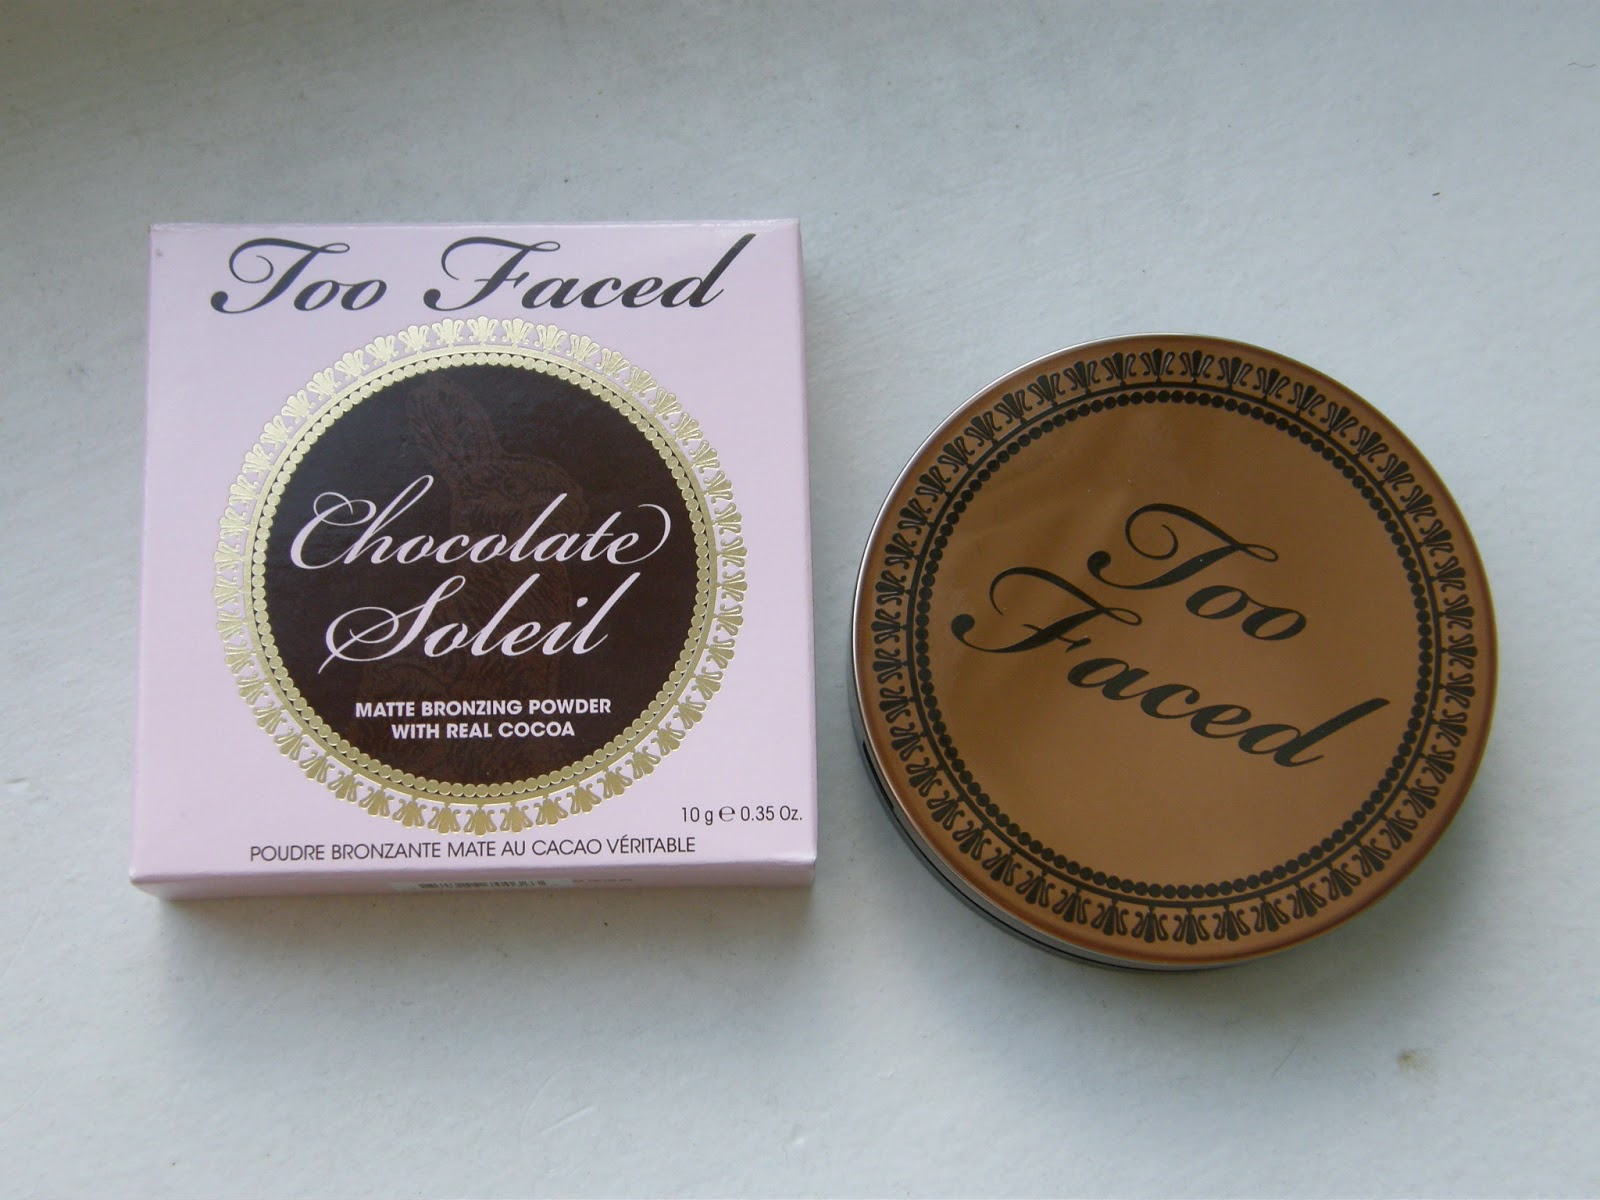 Thrift Thick: Too Faced Chocolate Soleil Matte Bronzing Powder ...